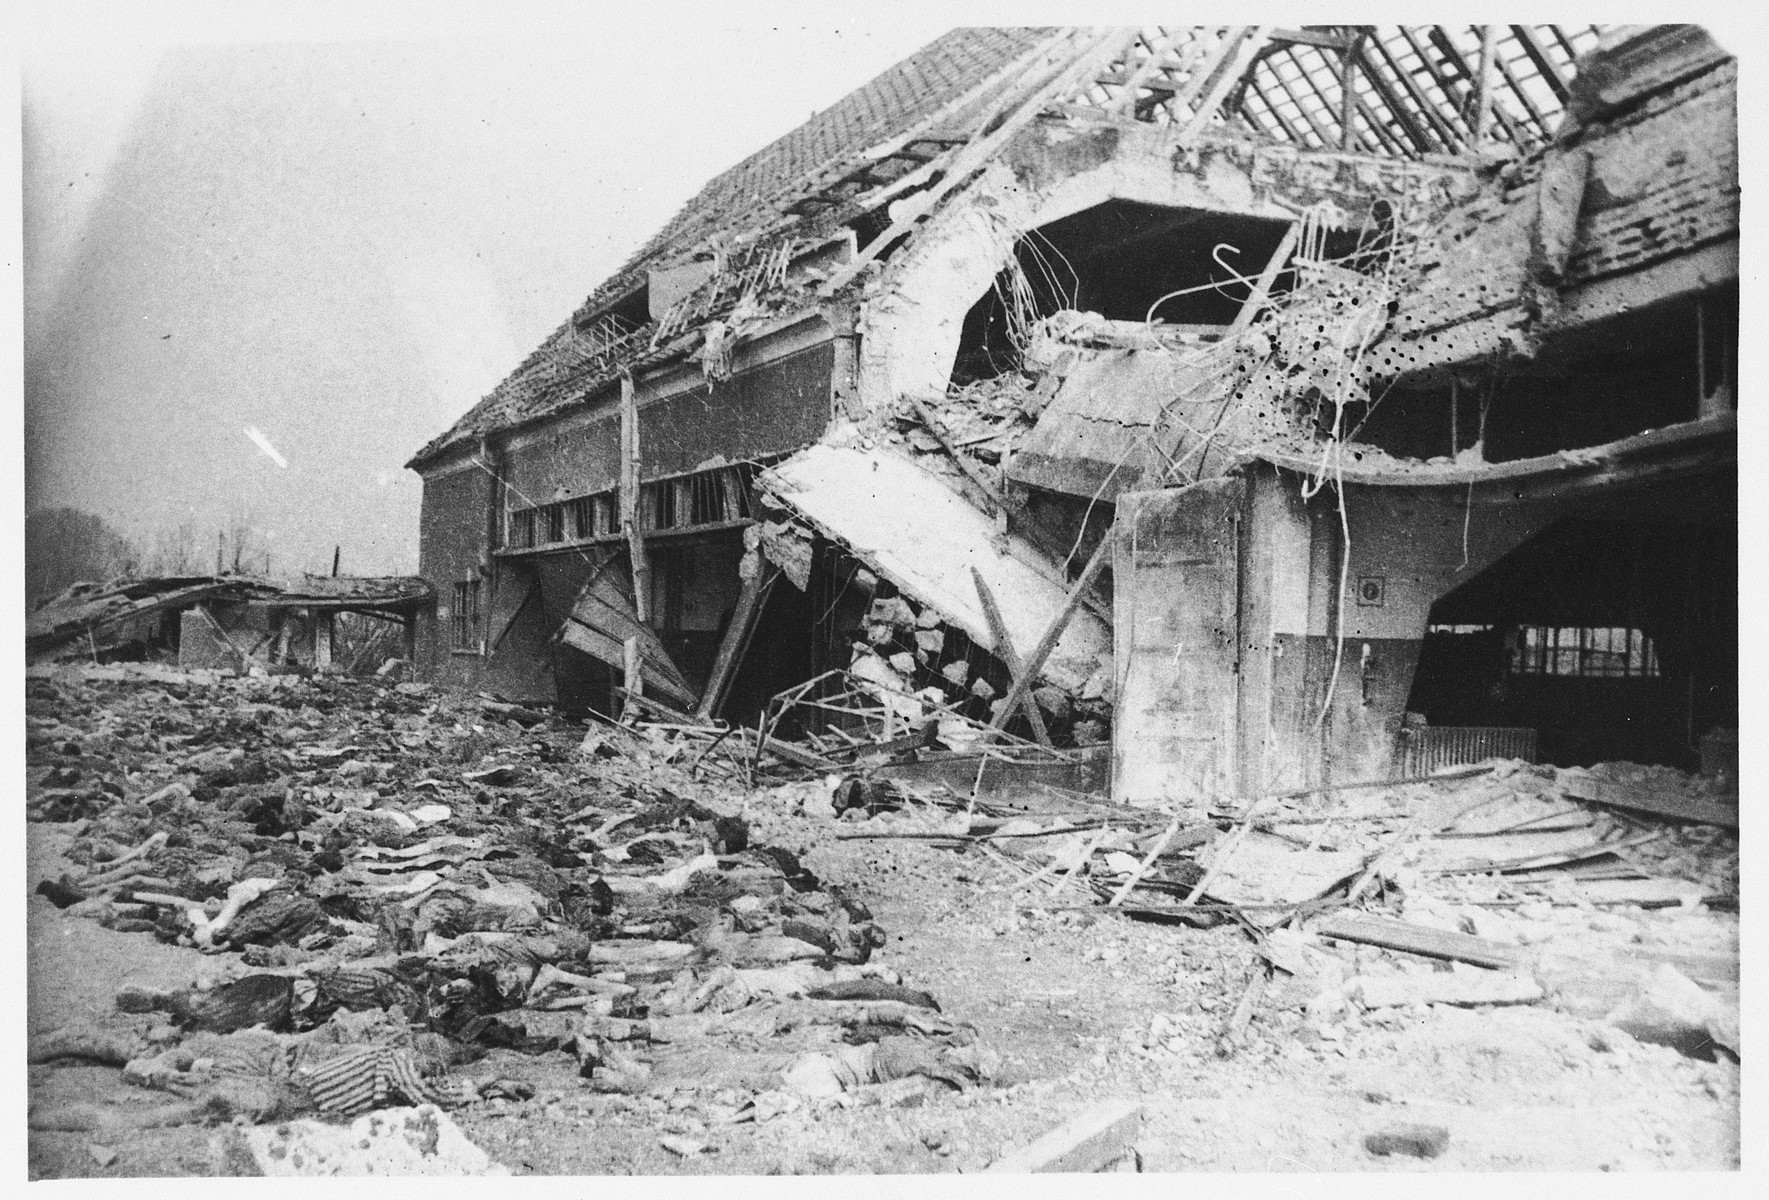 View of bodies of victims lying in front of a destroyed building in the Nordhausen concentration camp.